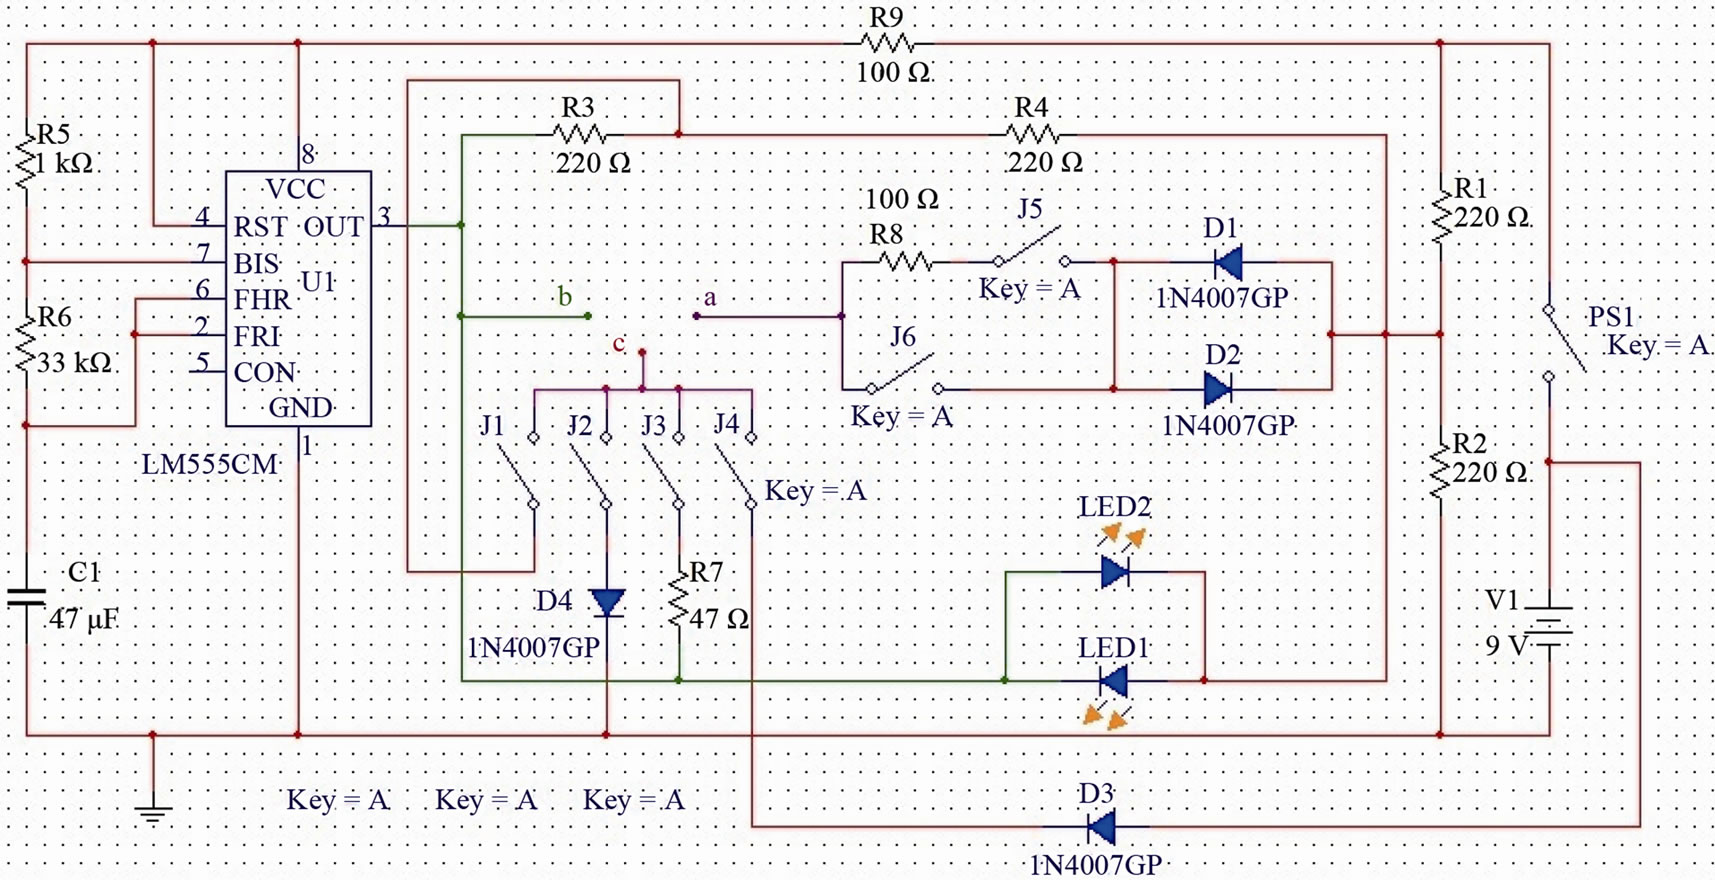 Design And Implementation Of An Analogue Tester Board Testingelectroniccomponents 2methodsfortestingmosfetshtml Figure 3 Simulation Model By Software Multisim 110